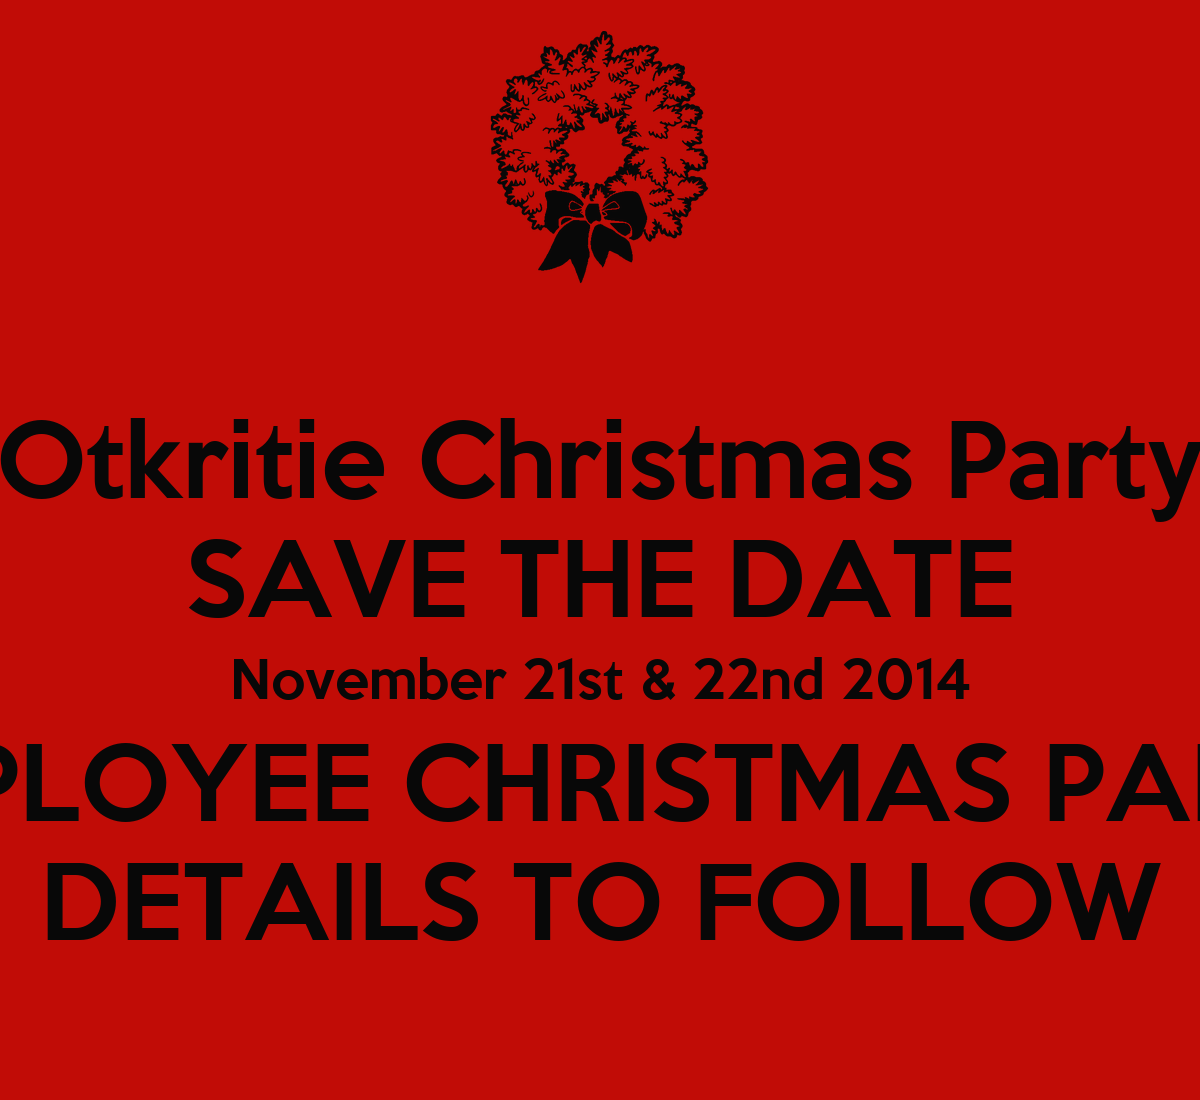 22nd Birthday Ideas In November: Otkritie Christmas Party SAVE THE DATE November 21st